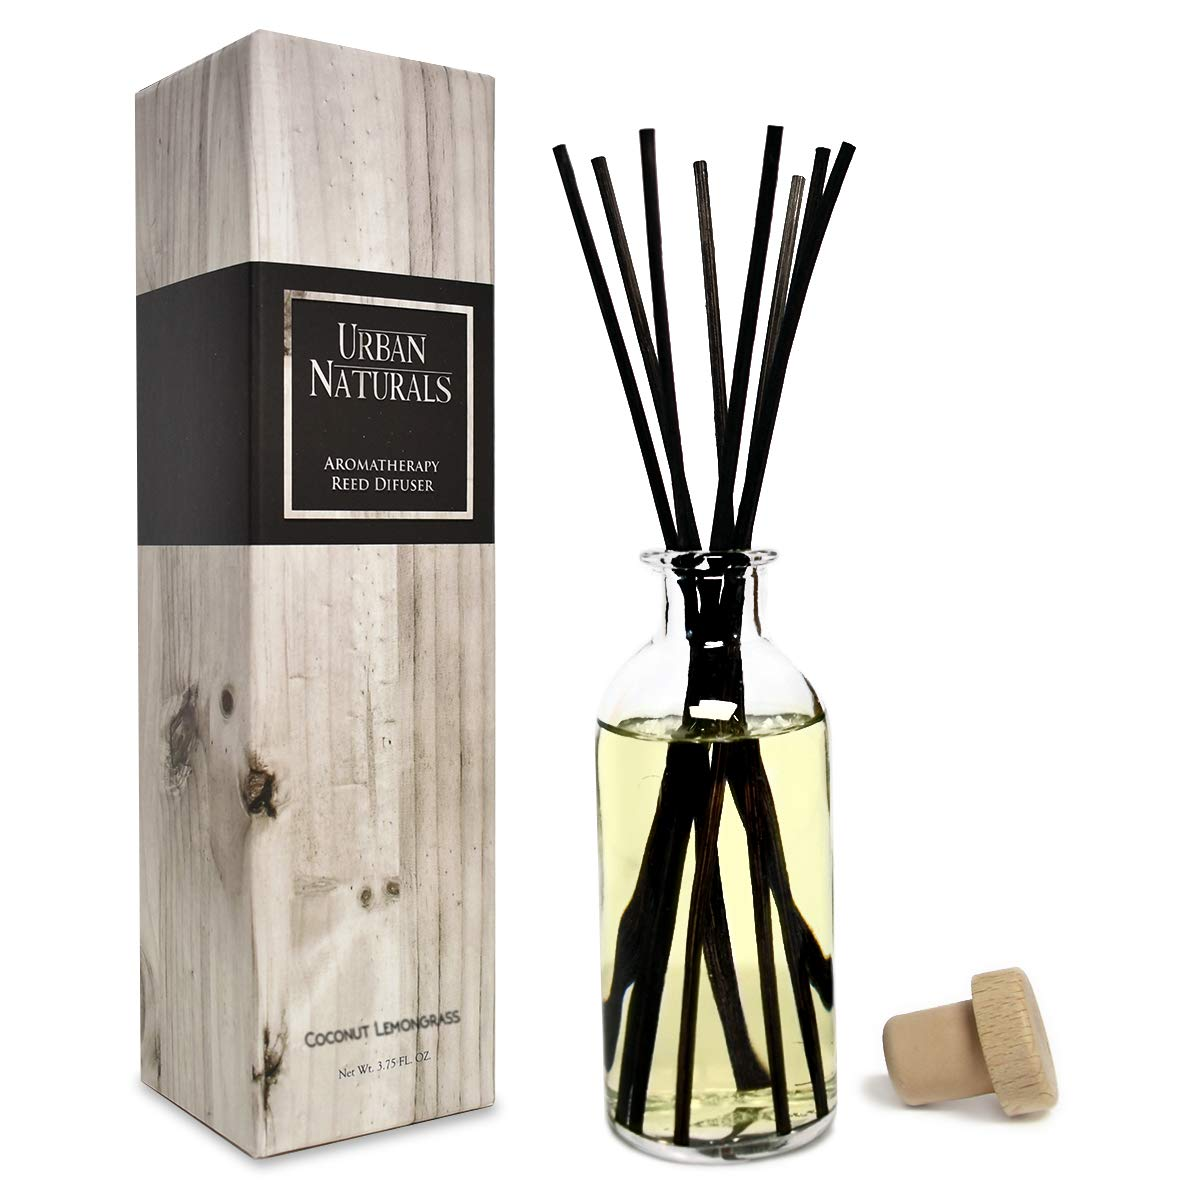 Urban Naturals Coconut Lemongrass Home Fragrance Reed Diffuser Oil Set | Tropical Blend of Lemongrass, Fresh Limes & Sweet Coconut Milk | Great Home Gift Idea! Vegan. Made in The USA by Urban Naturals (Image #1)